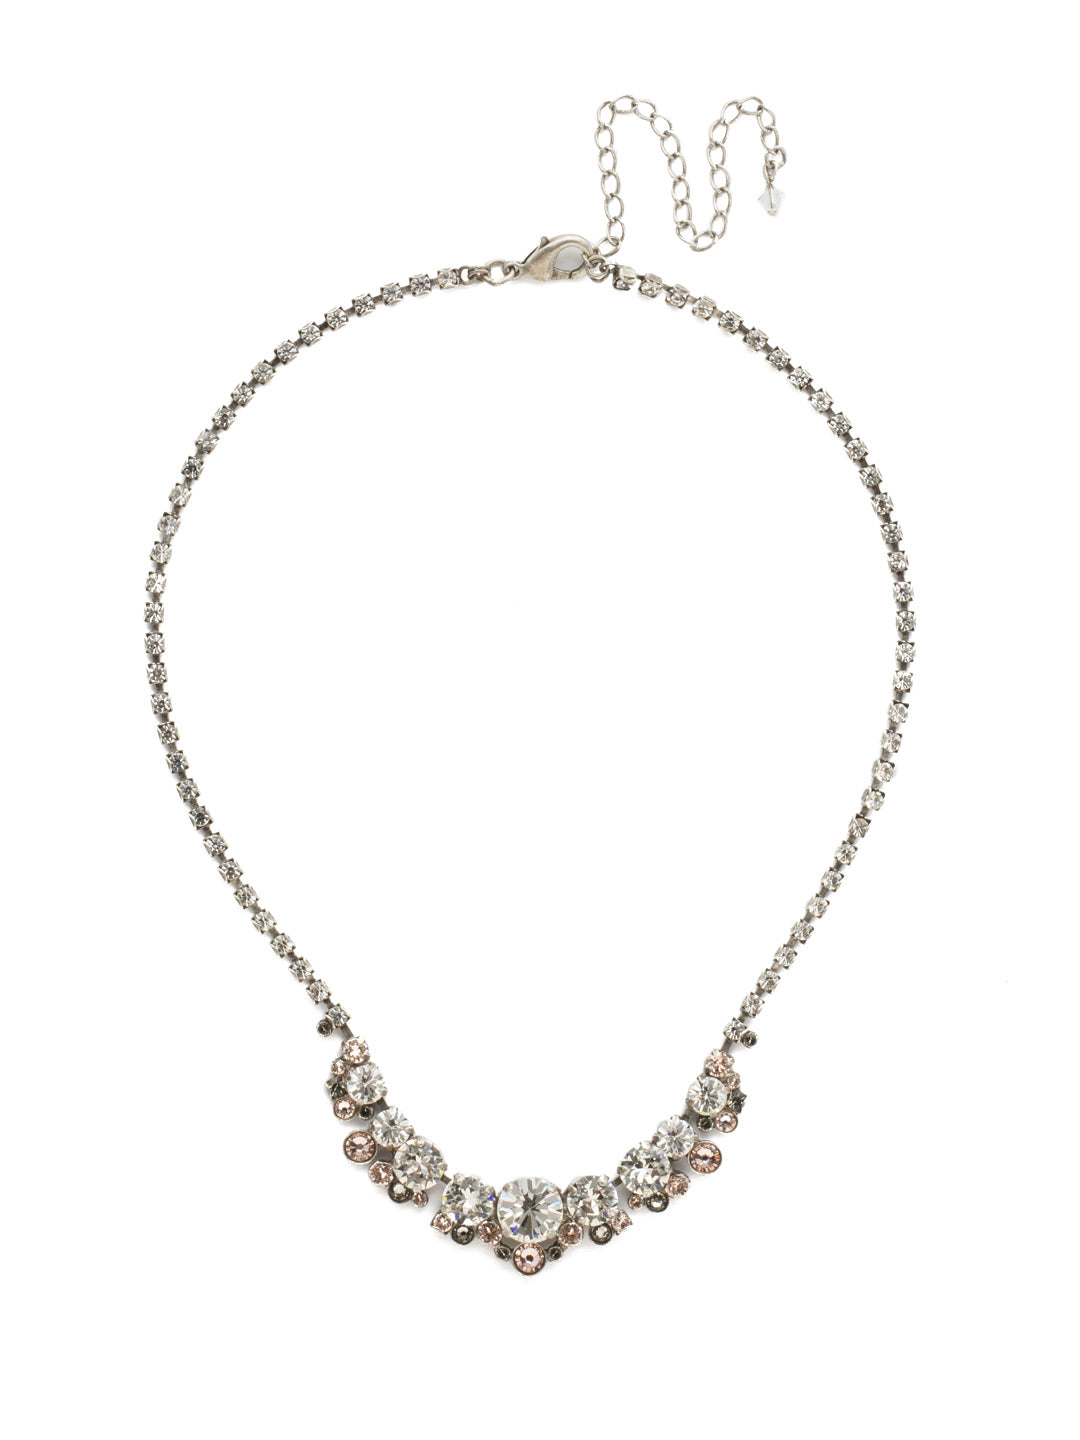 Multi-cut Round Crystal Cluster Line Necklace - NCW11ASSNB